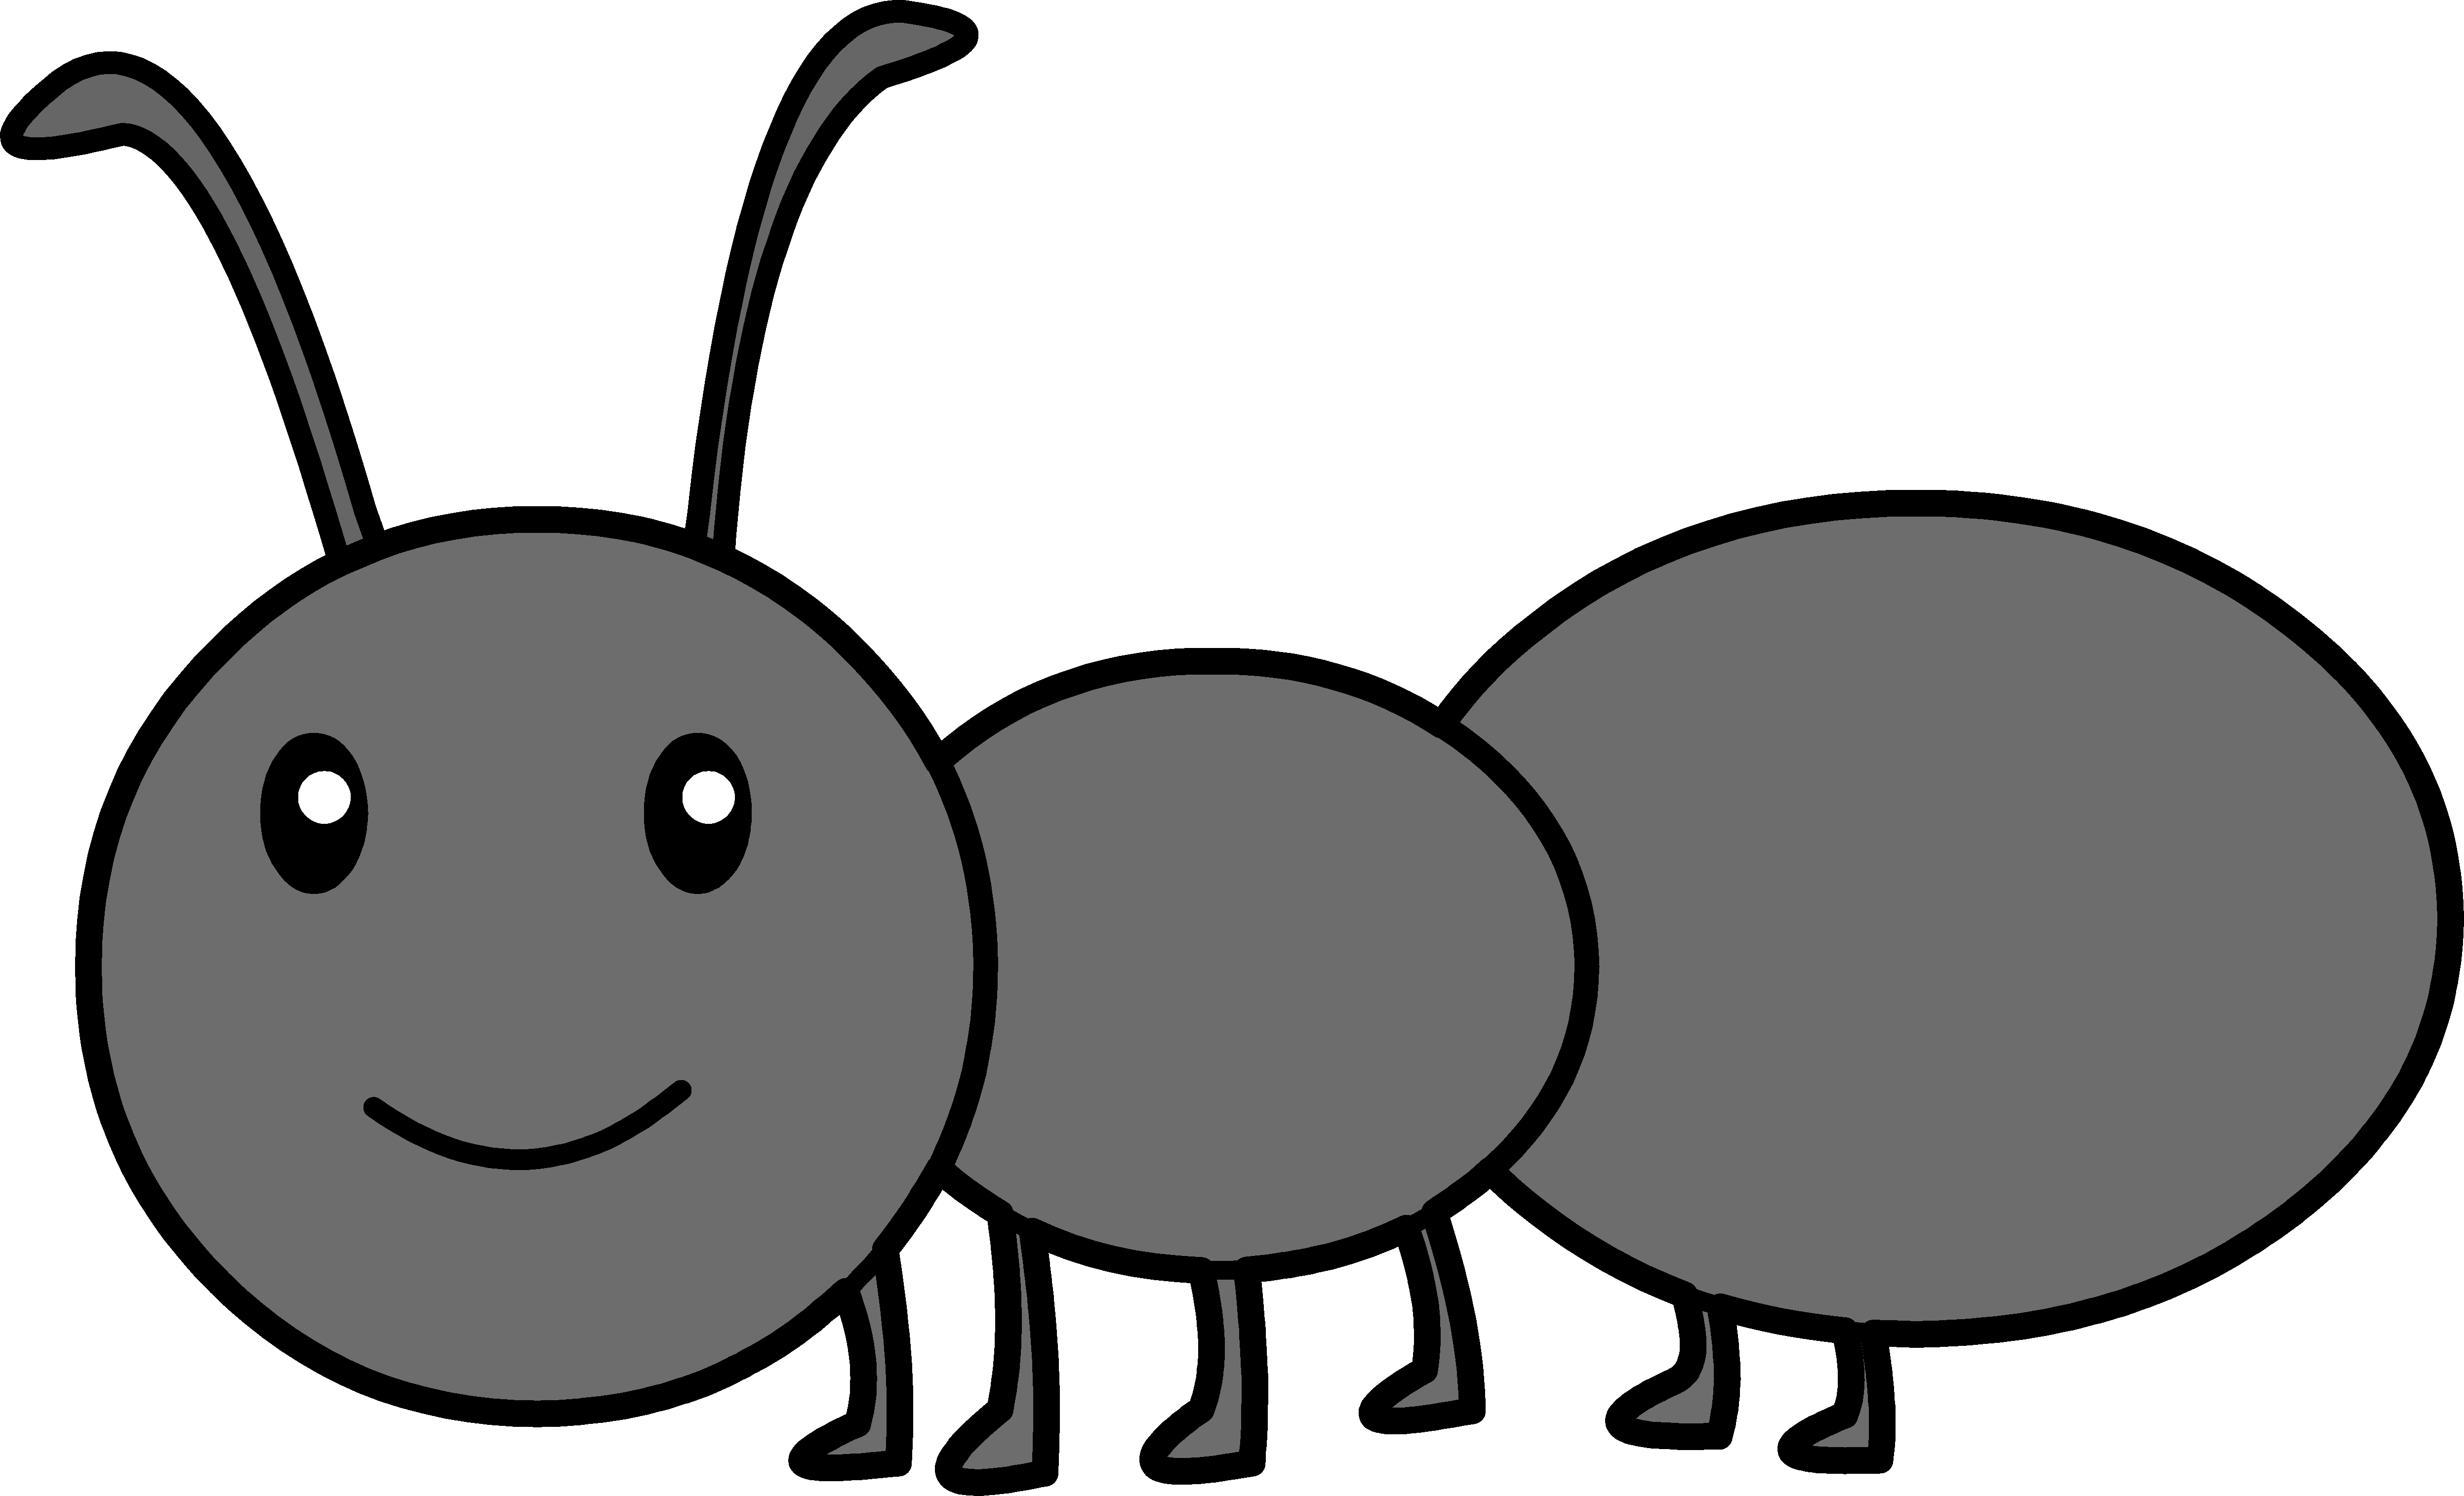 Ants clipart friendly. How are your exams